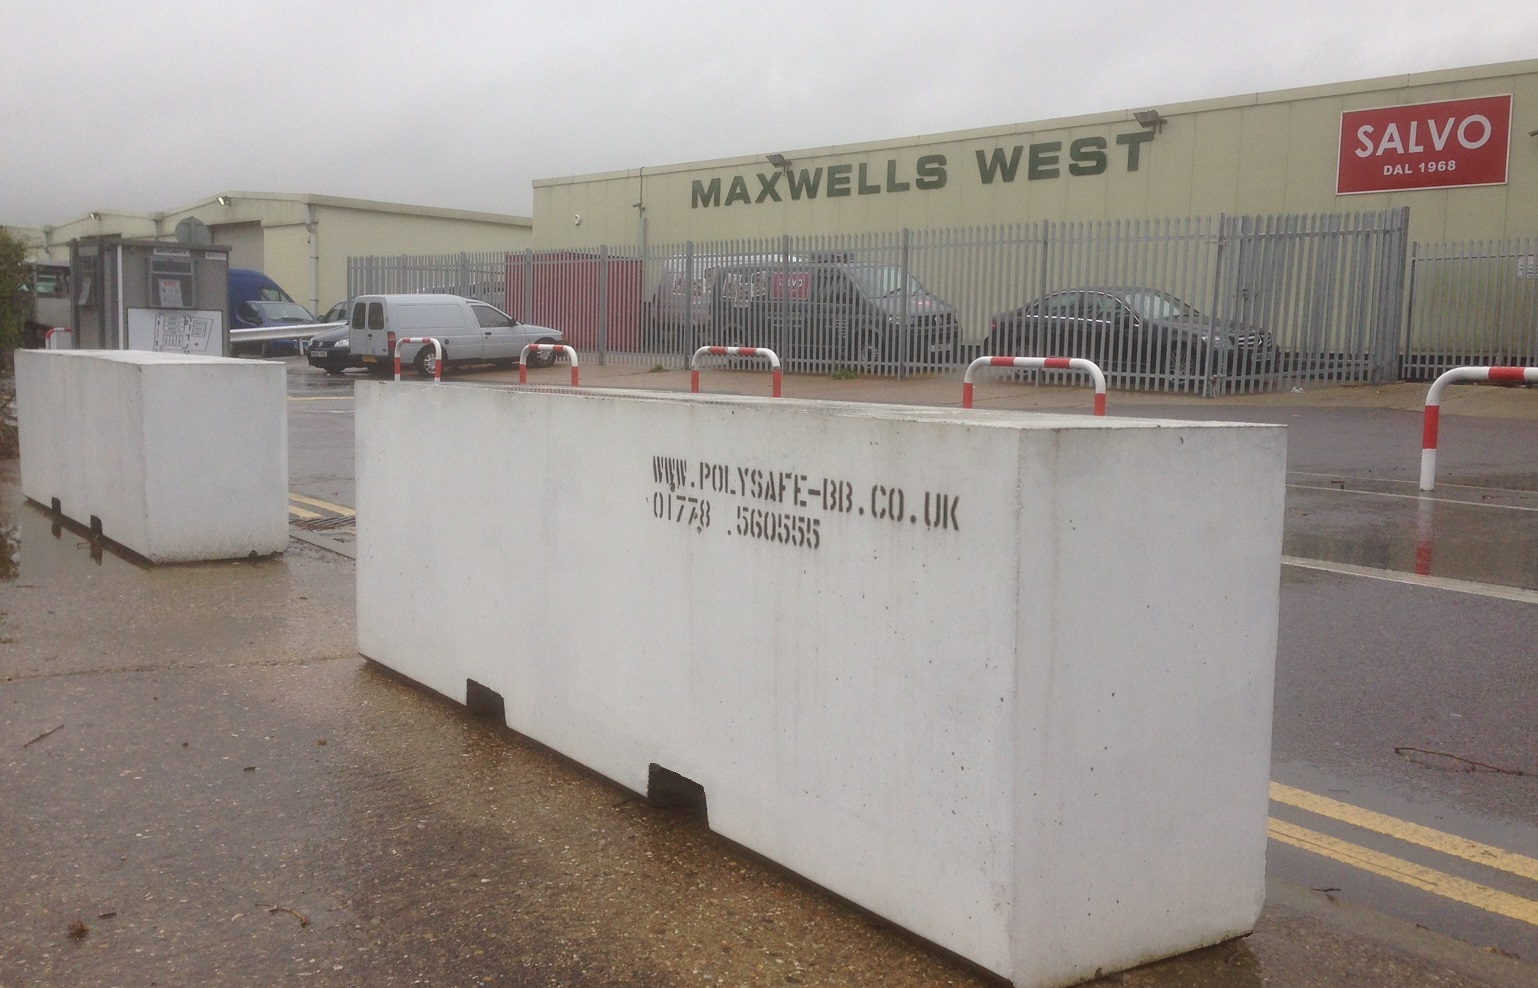 Concrete blocks used at Maxwells West Industrial site